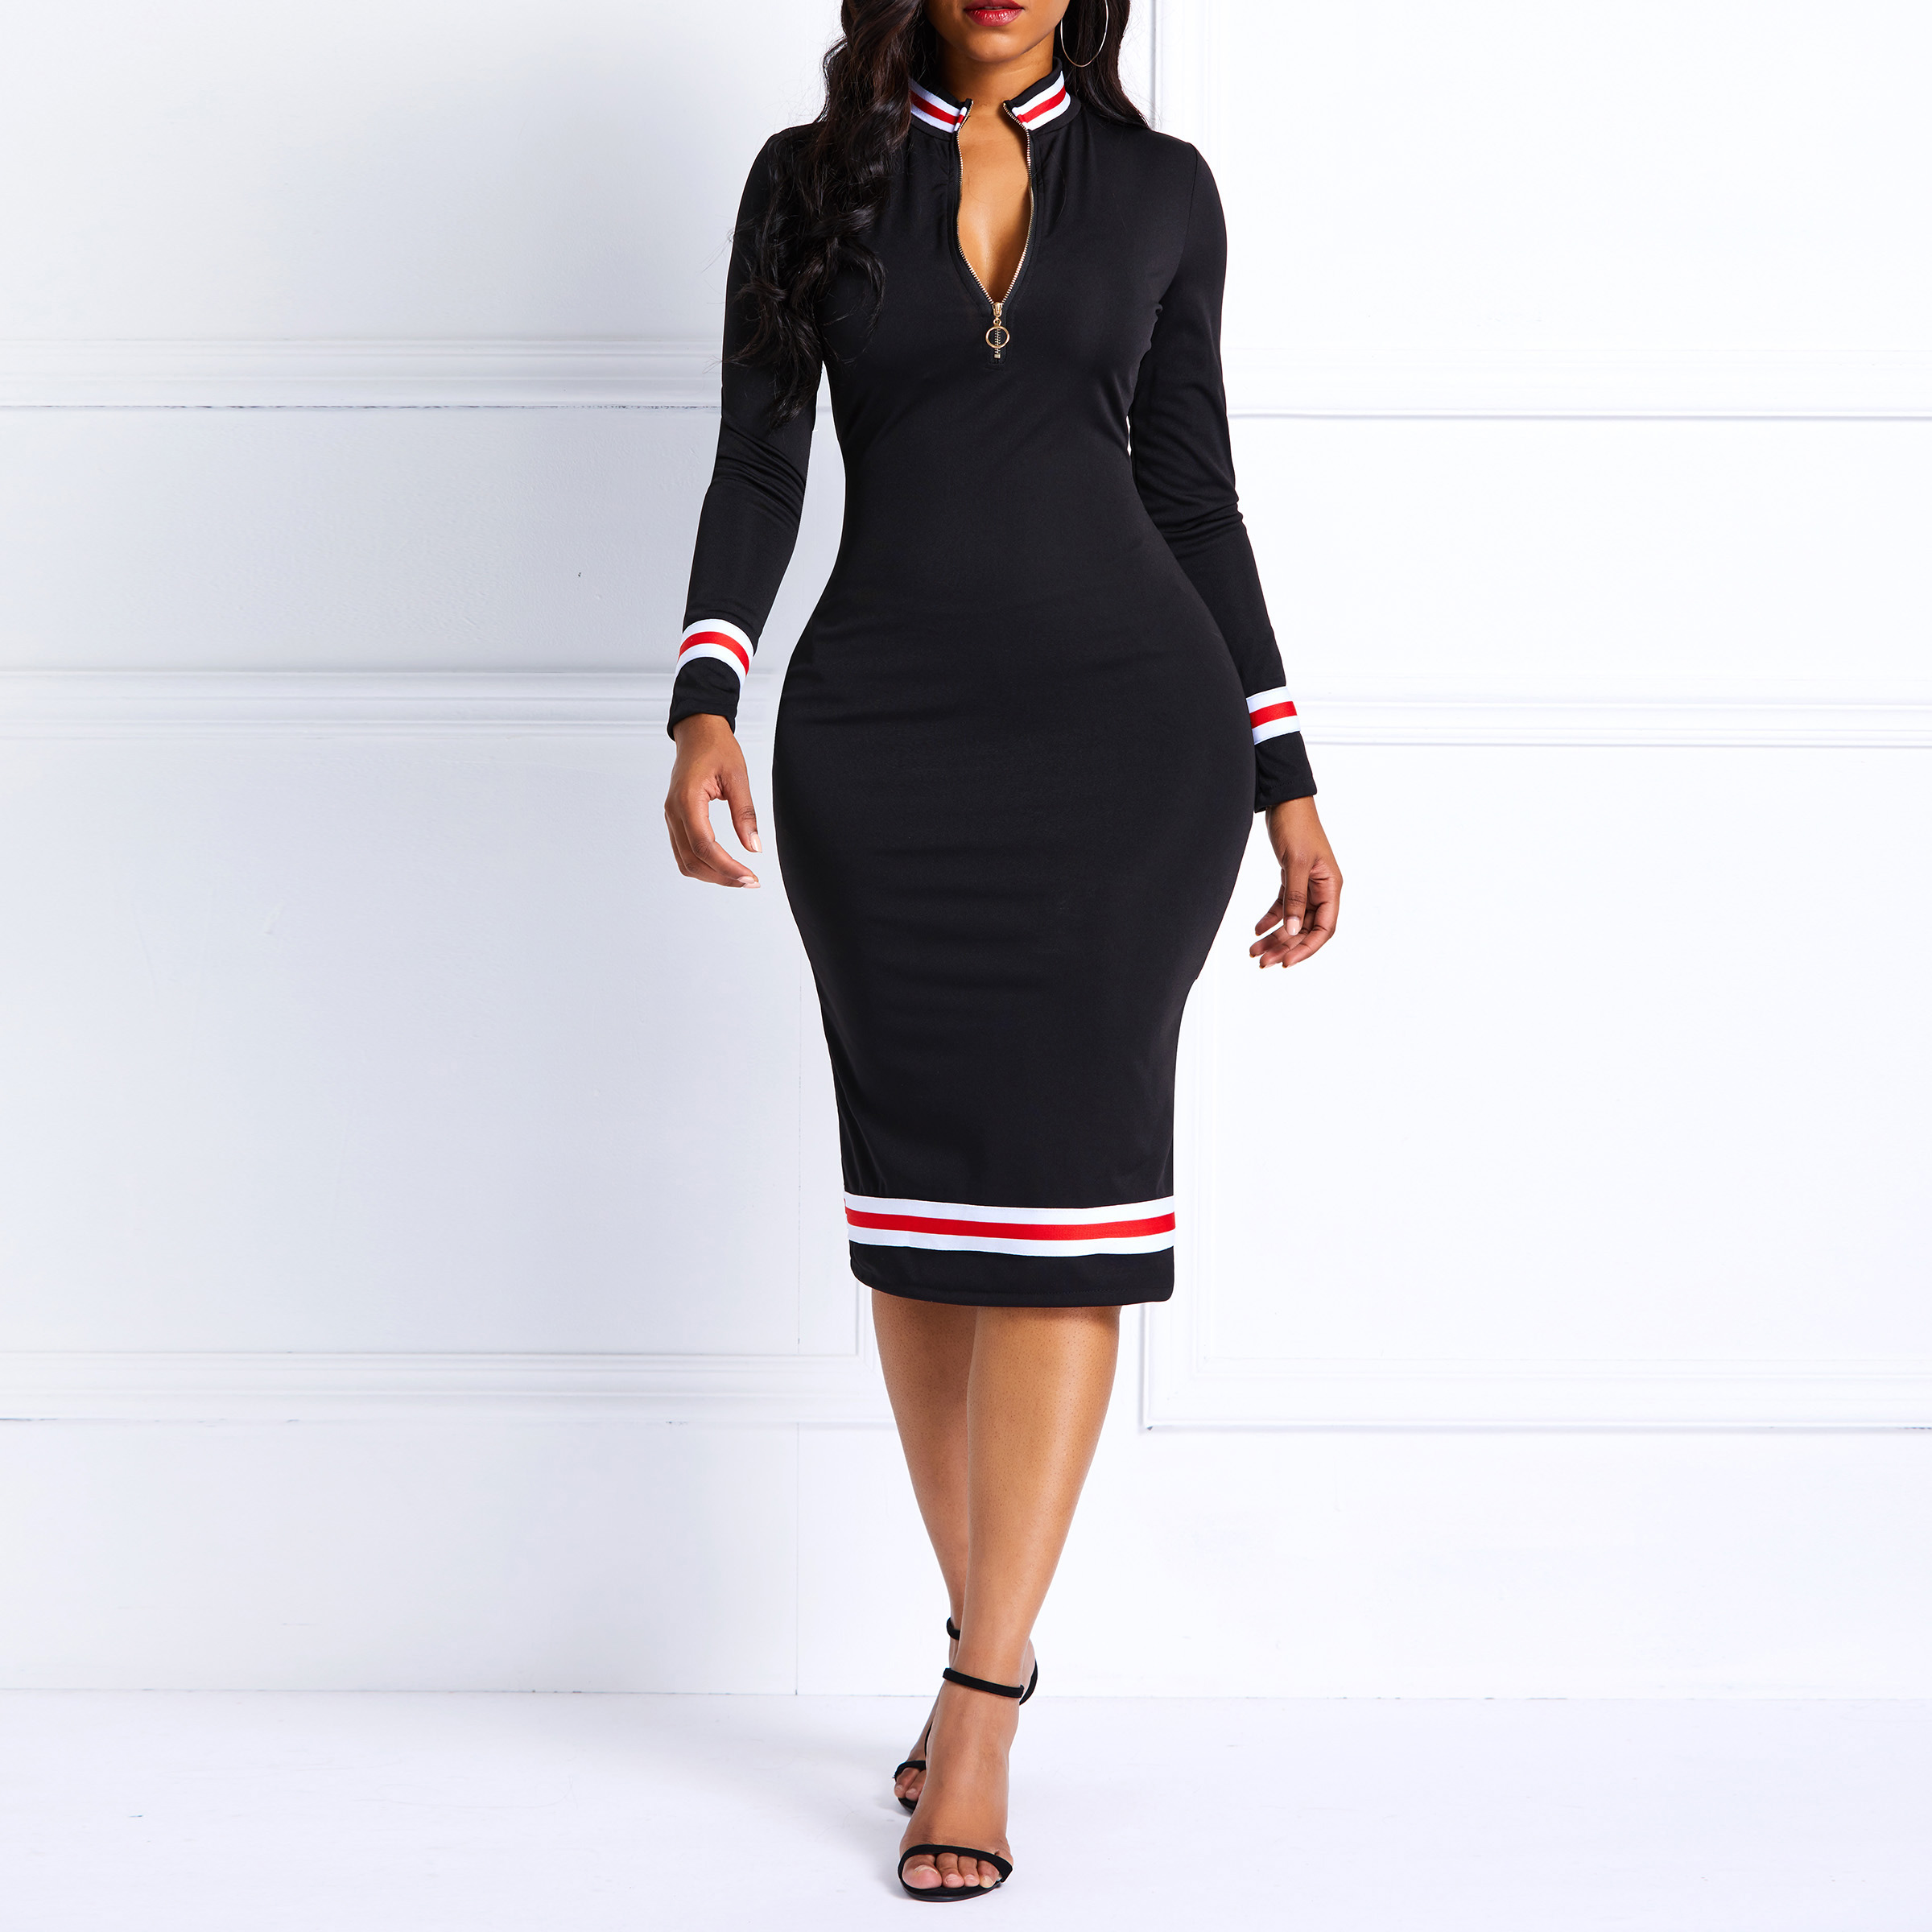 Women Bodycon Knee-Length Dresses Elegant Black Sexy Zipper Striped Cocktail Party Dress Casual Spring Long Sleeve Red  Dress